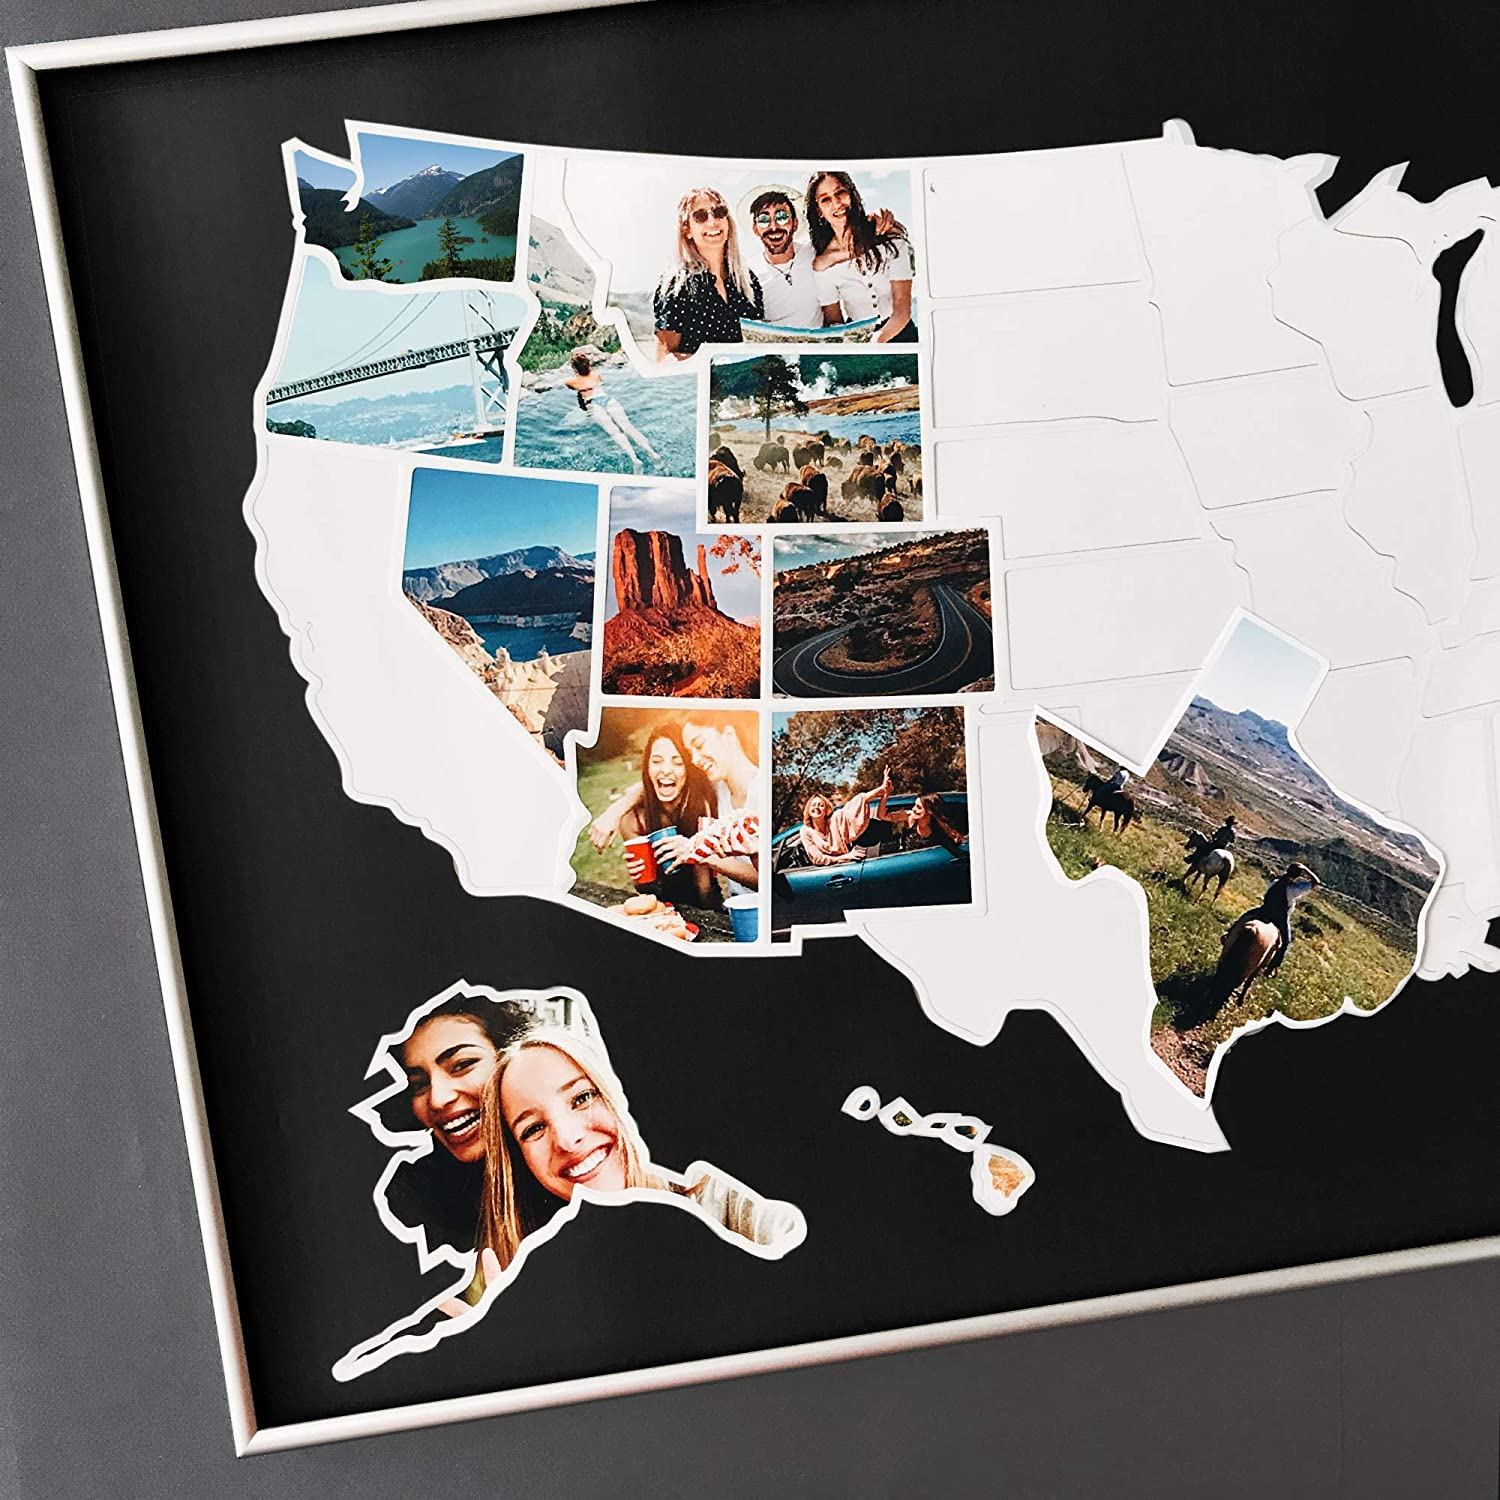 USA Photo Map - 50 States Travel Limited Ranking integrated 1st place price sale M 36 x 24 in Unframed